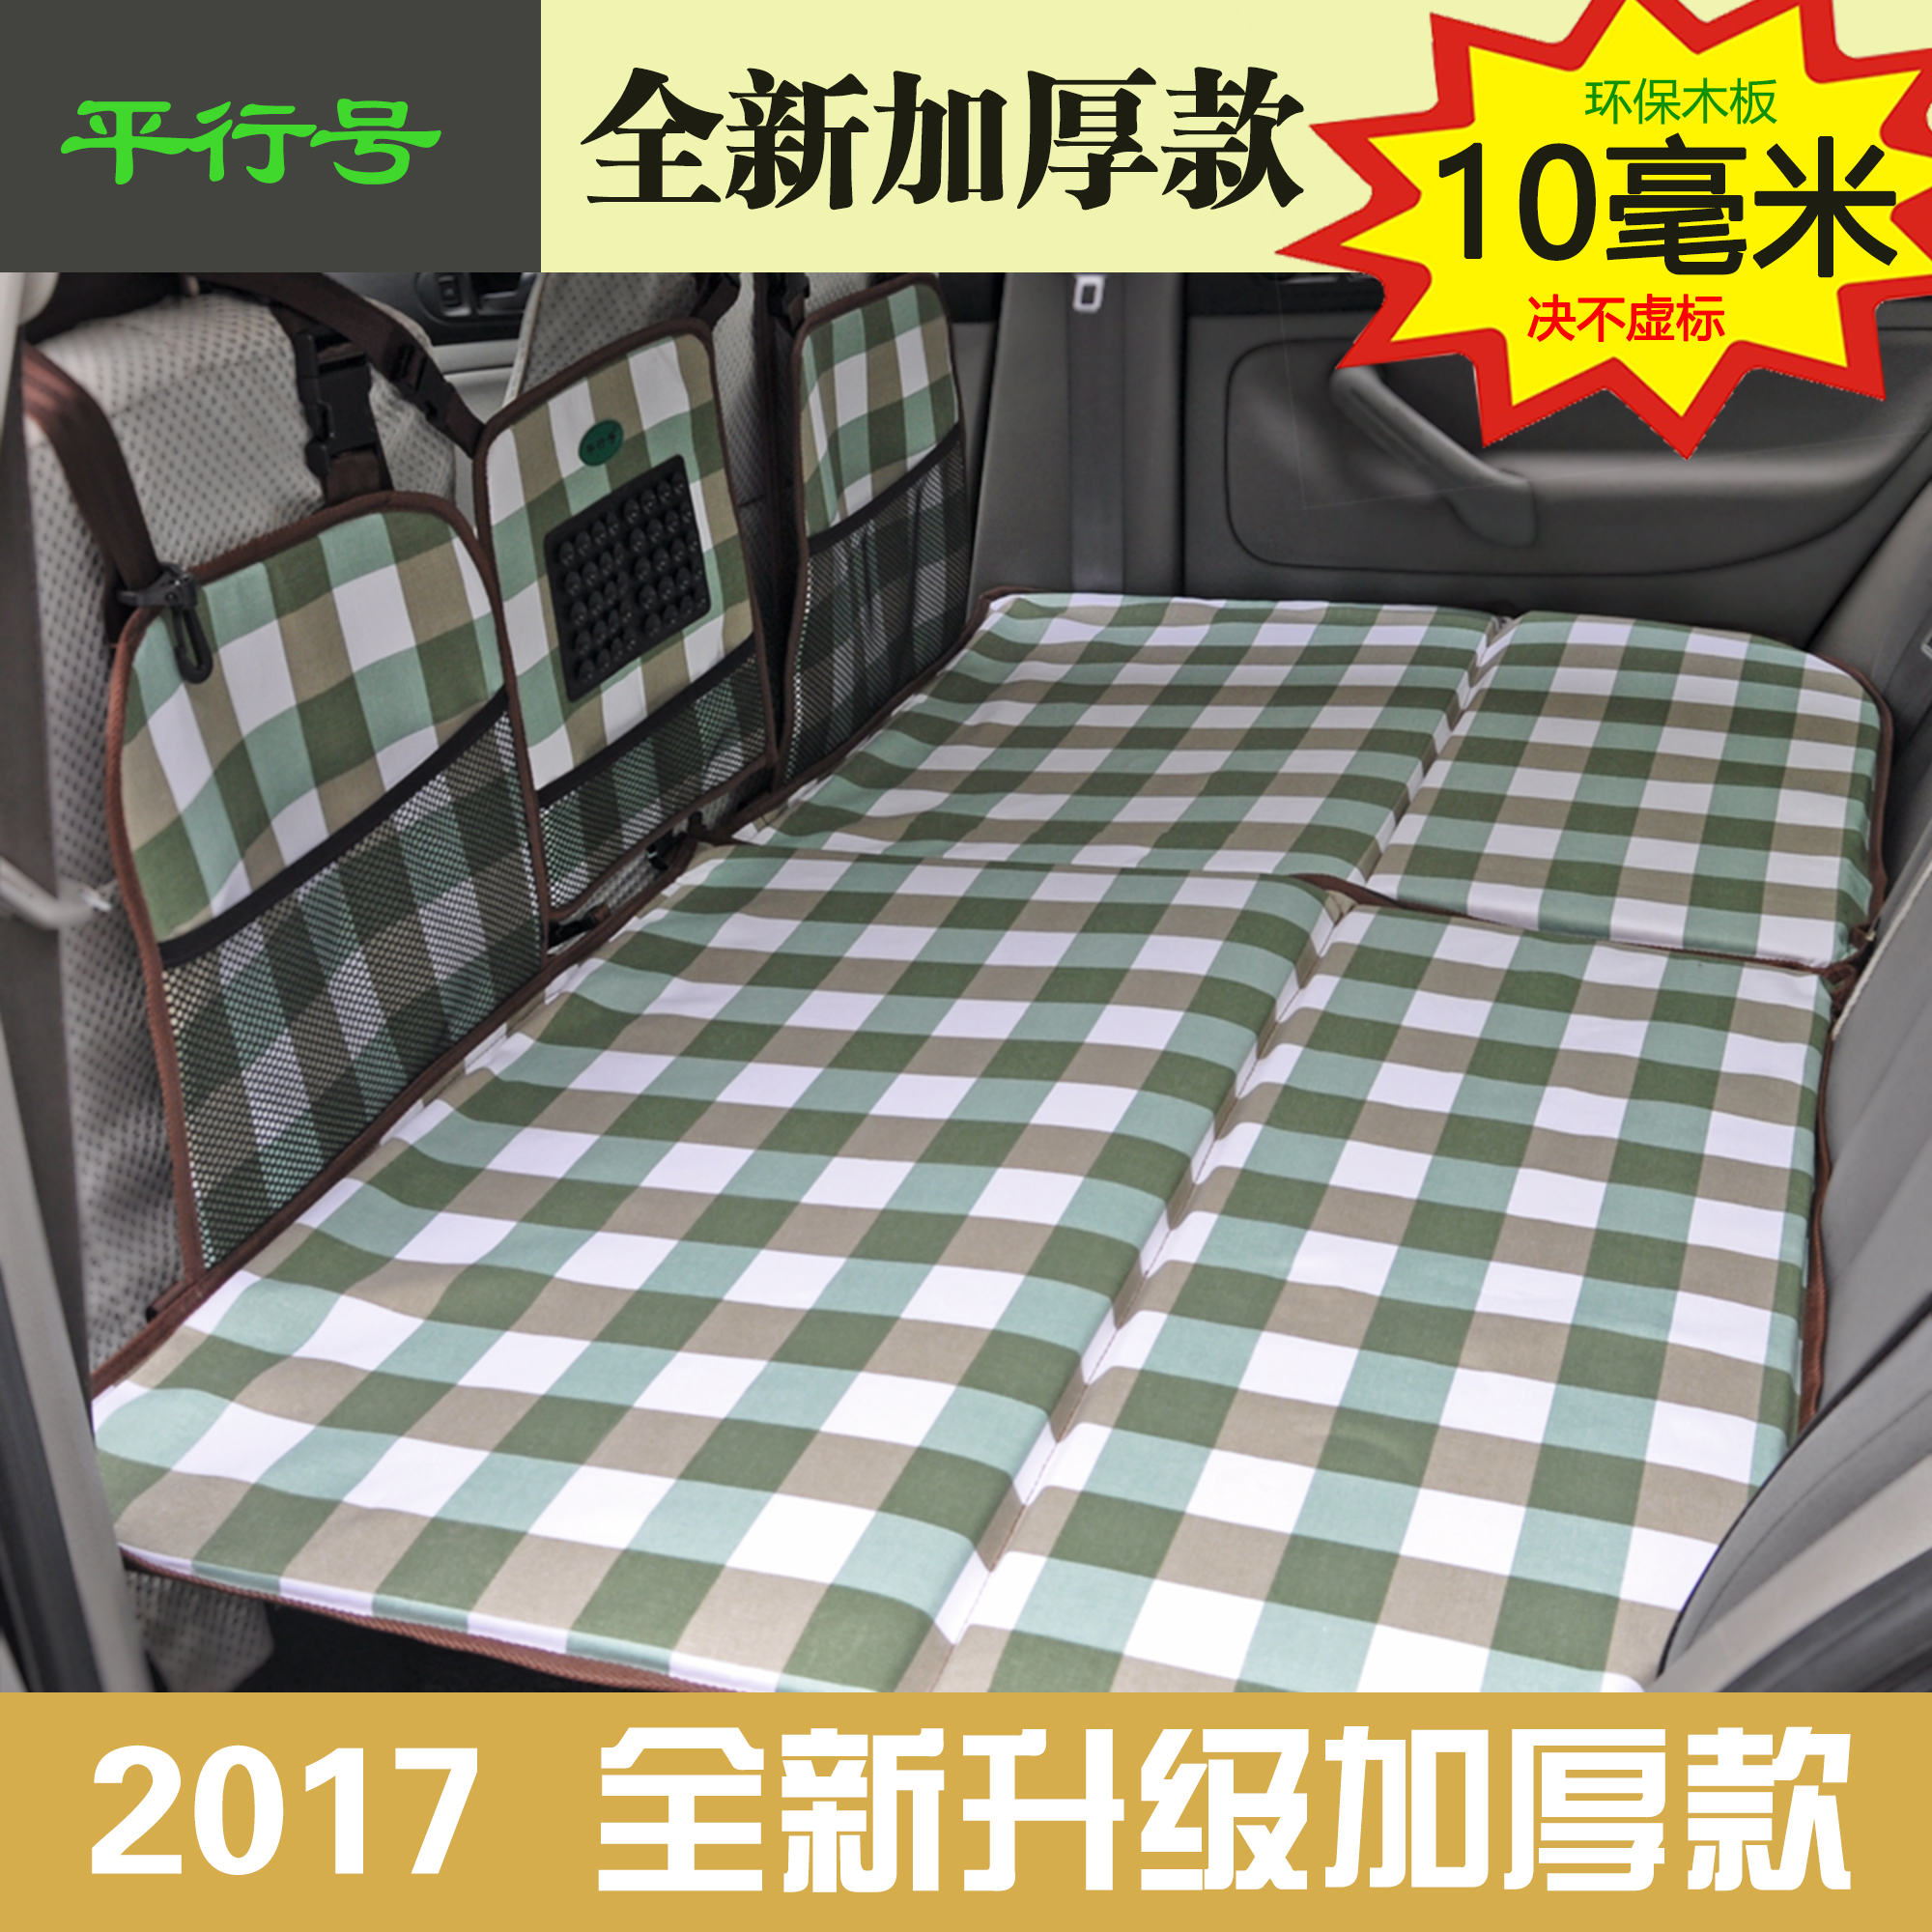 A number of non parallel thickening inflatable automobile automobile general vehicle vehicle car bed mattress bed bed